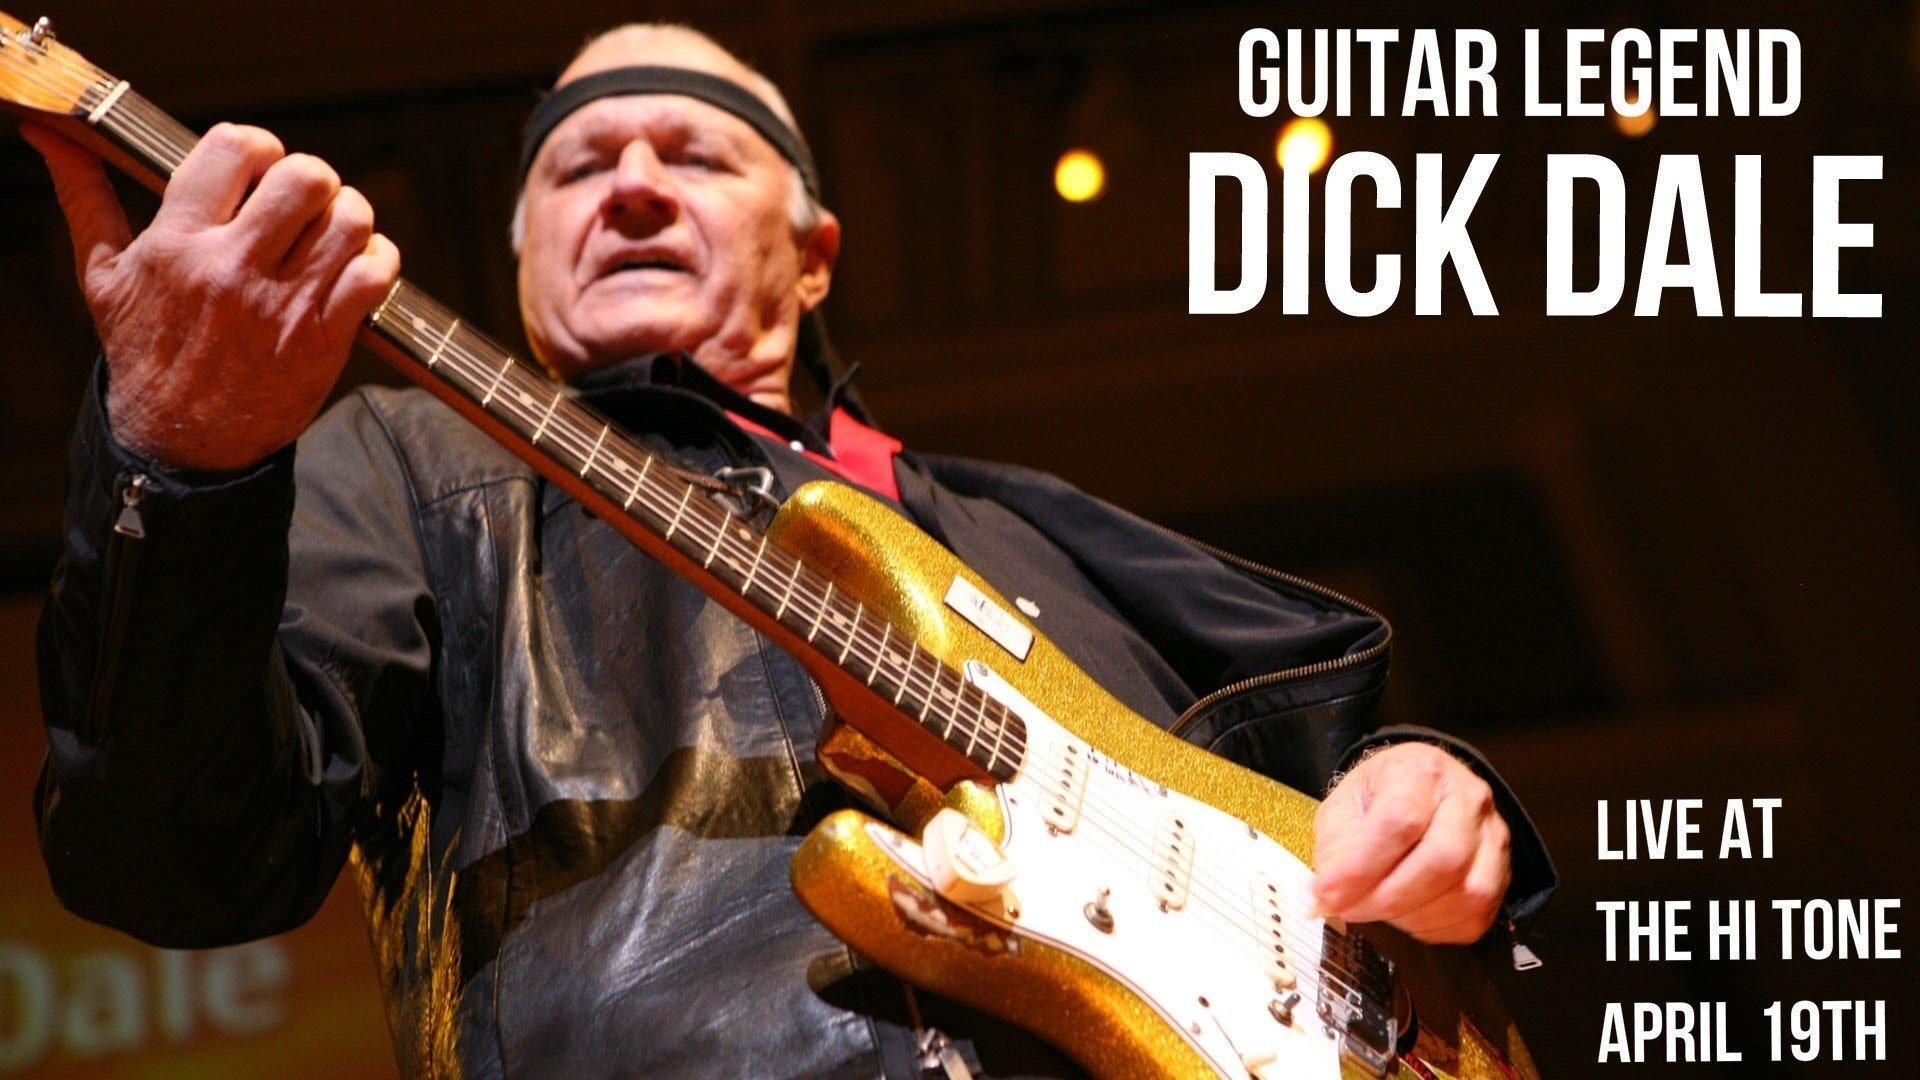 Luna reccomend Mountain dick dale